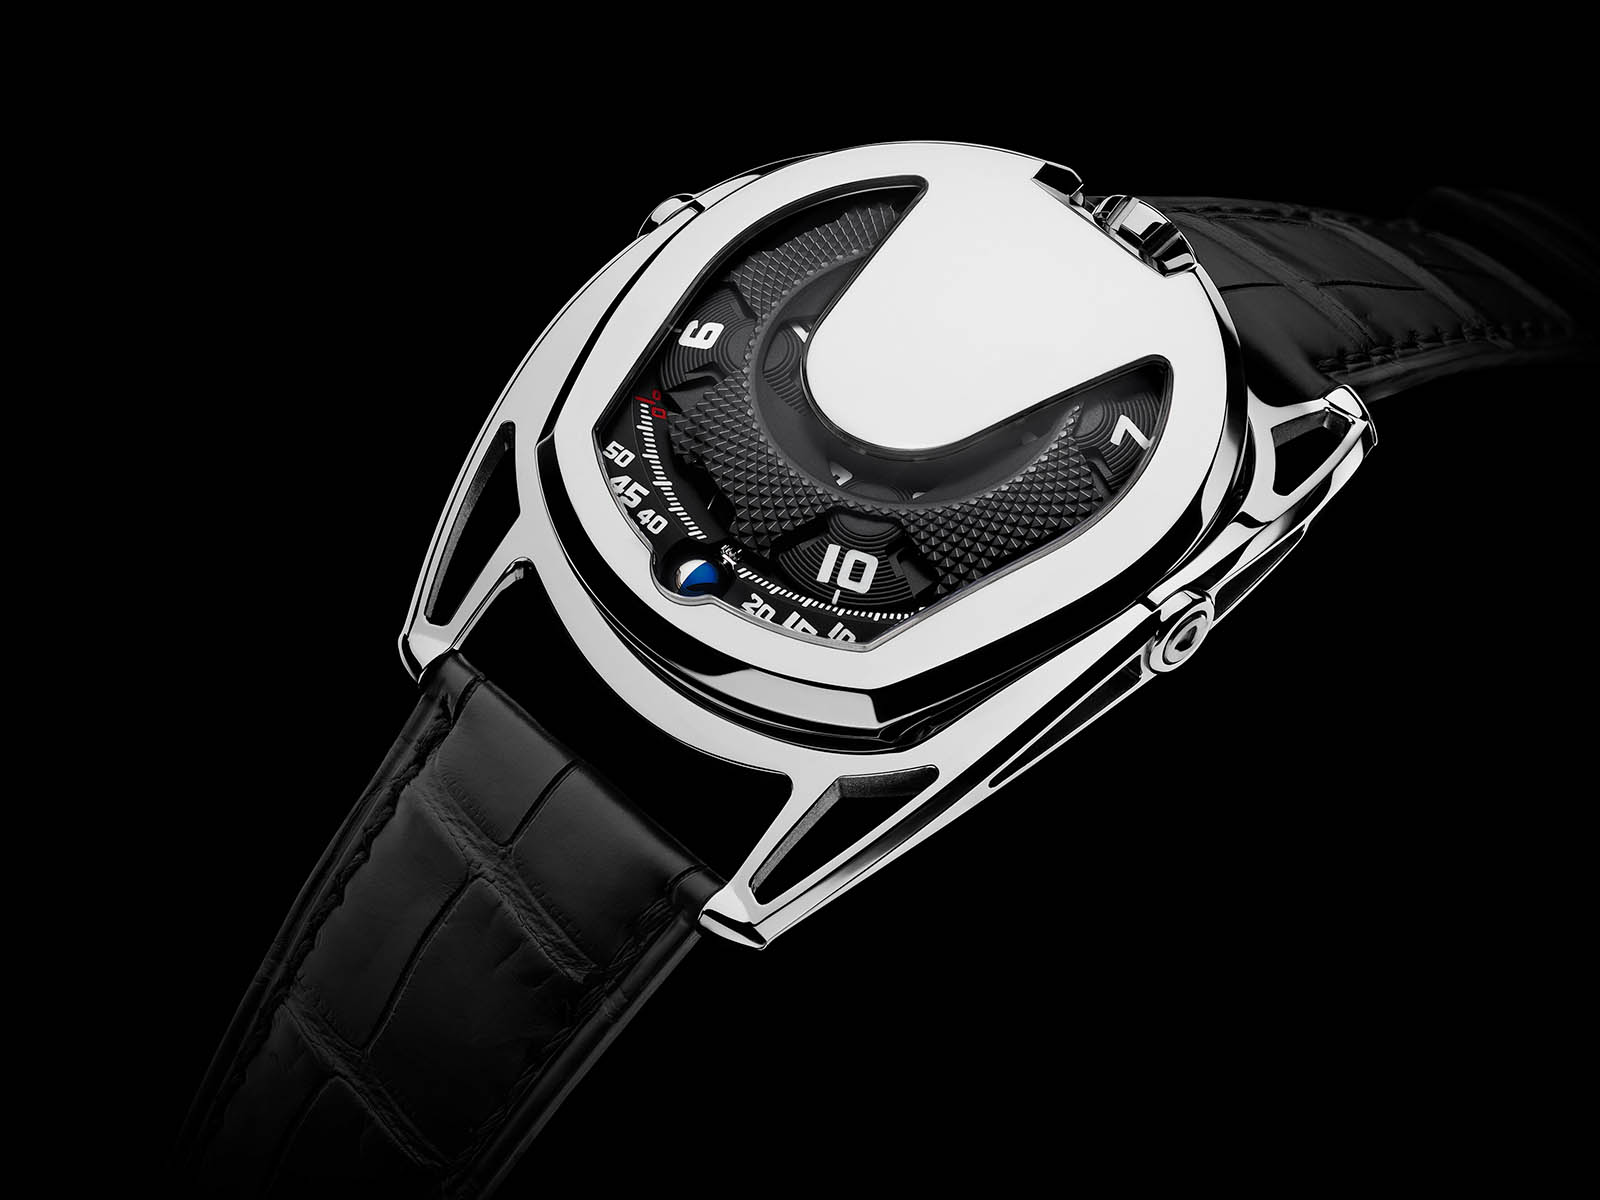 de-bethune-urwerk-only-watch-2019-2.jpg